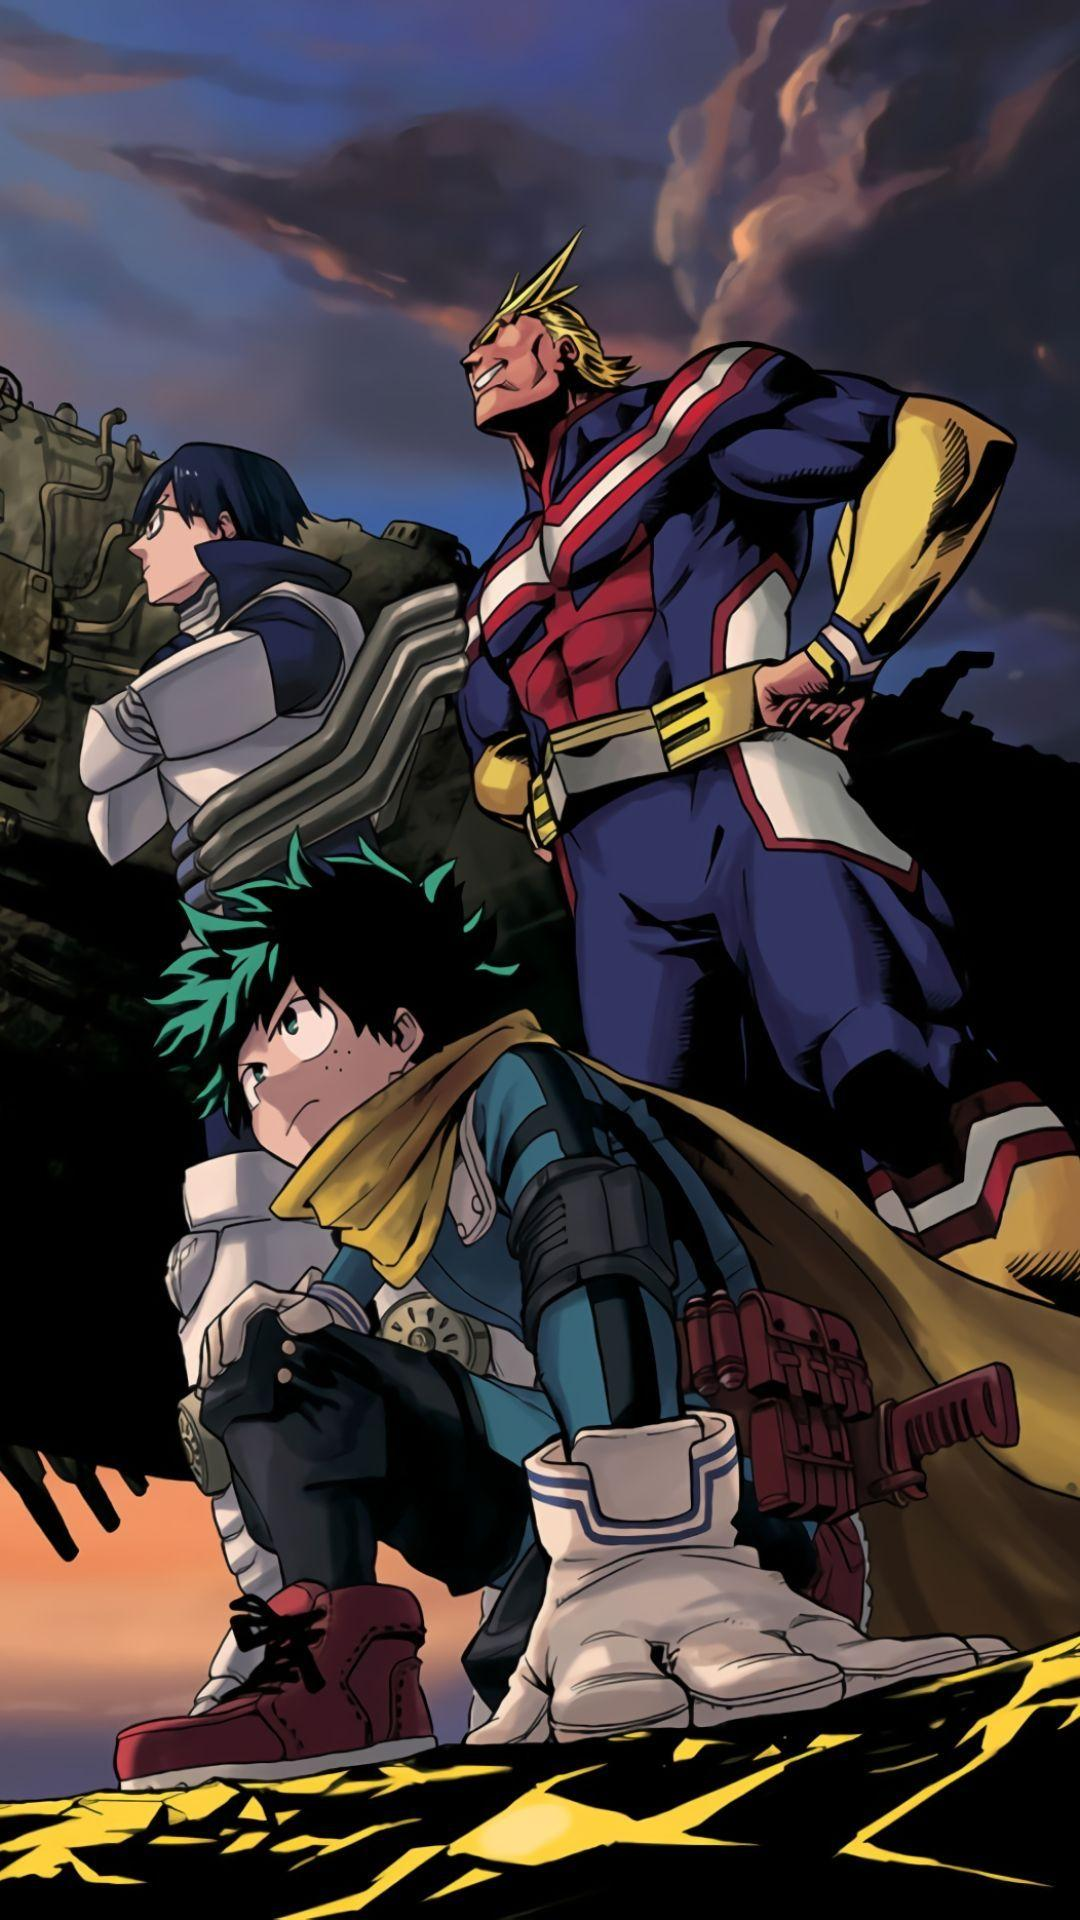 Follow the vibe and change your wallpaper every day! MHA Aesthetic Wallpapers - Wallpaper Cave